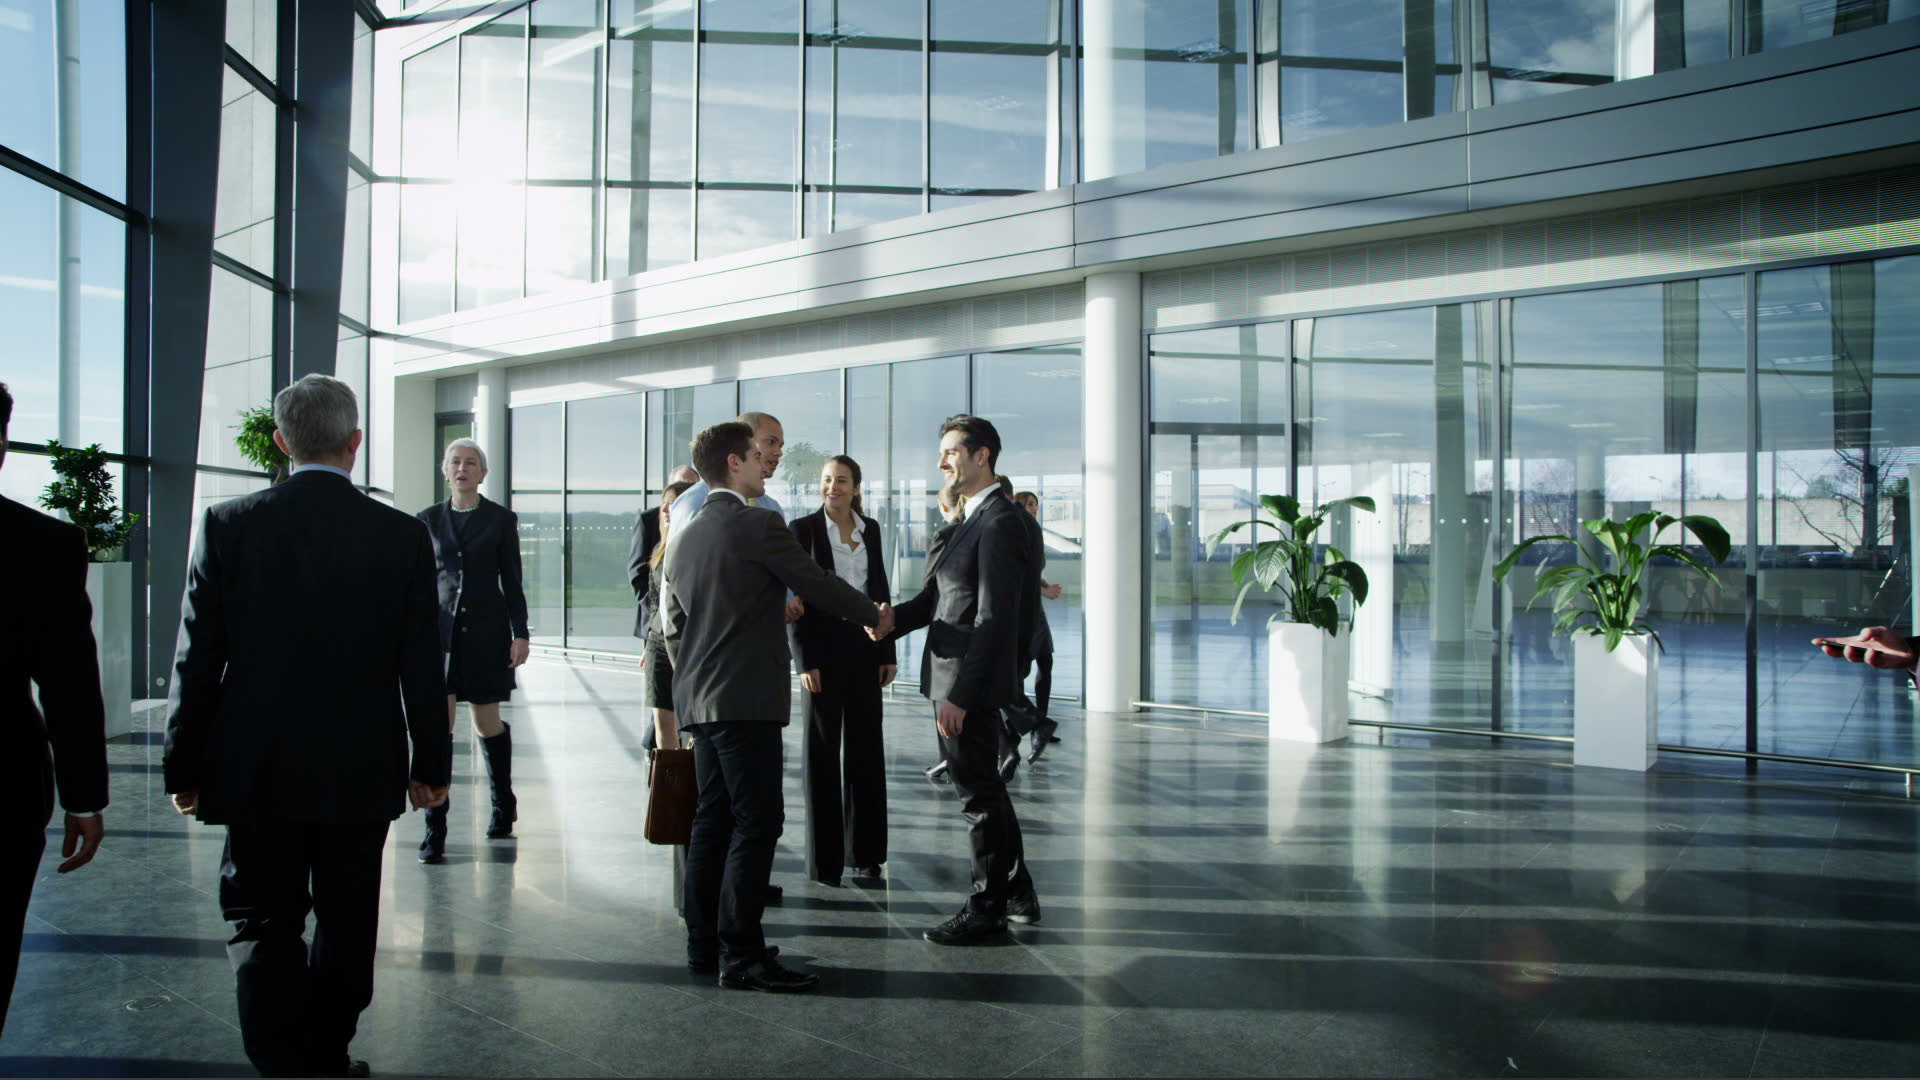 Business-office-wallpapers-hd-images-43